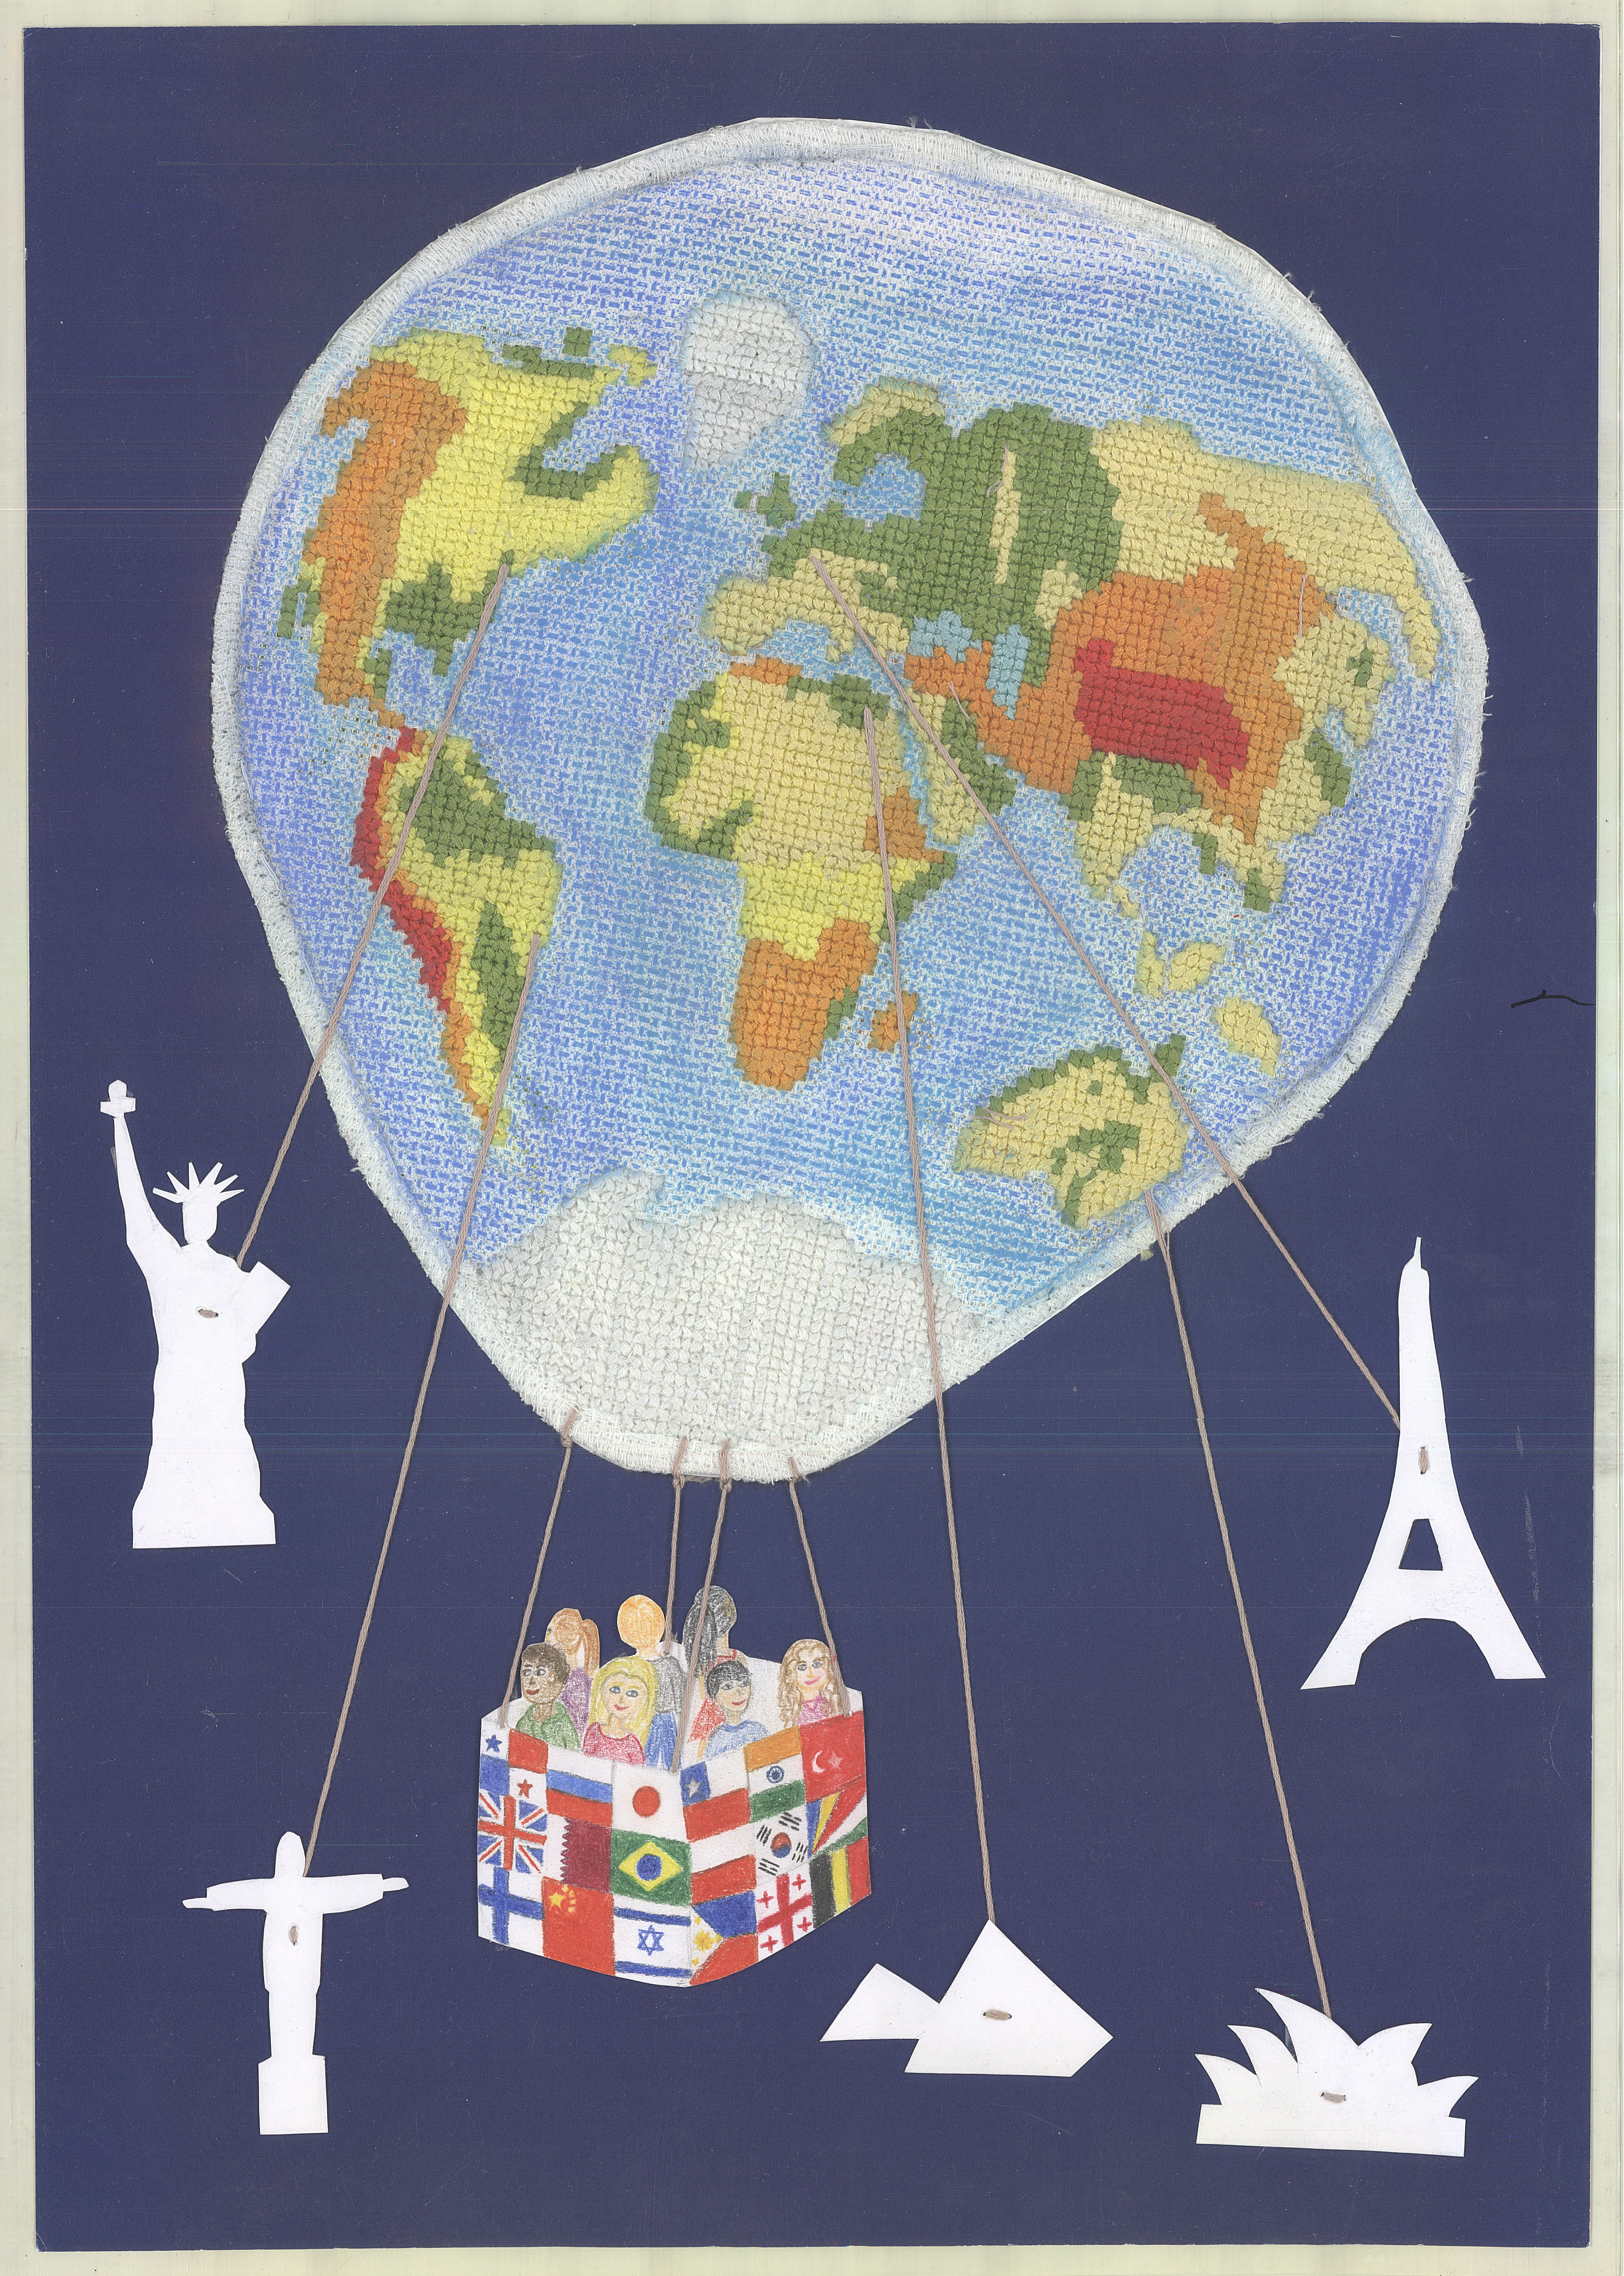 Children's map of the world